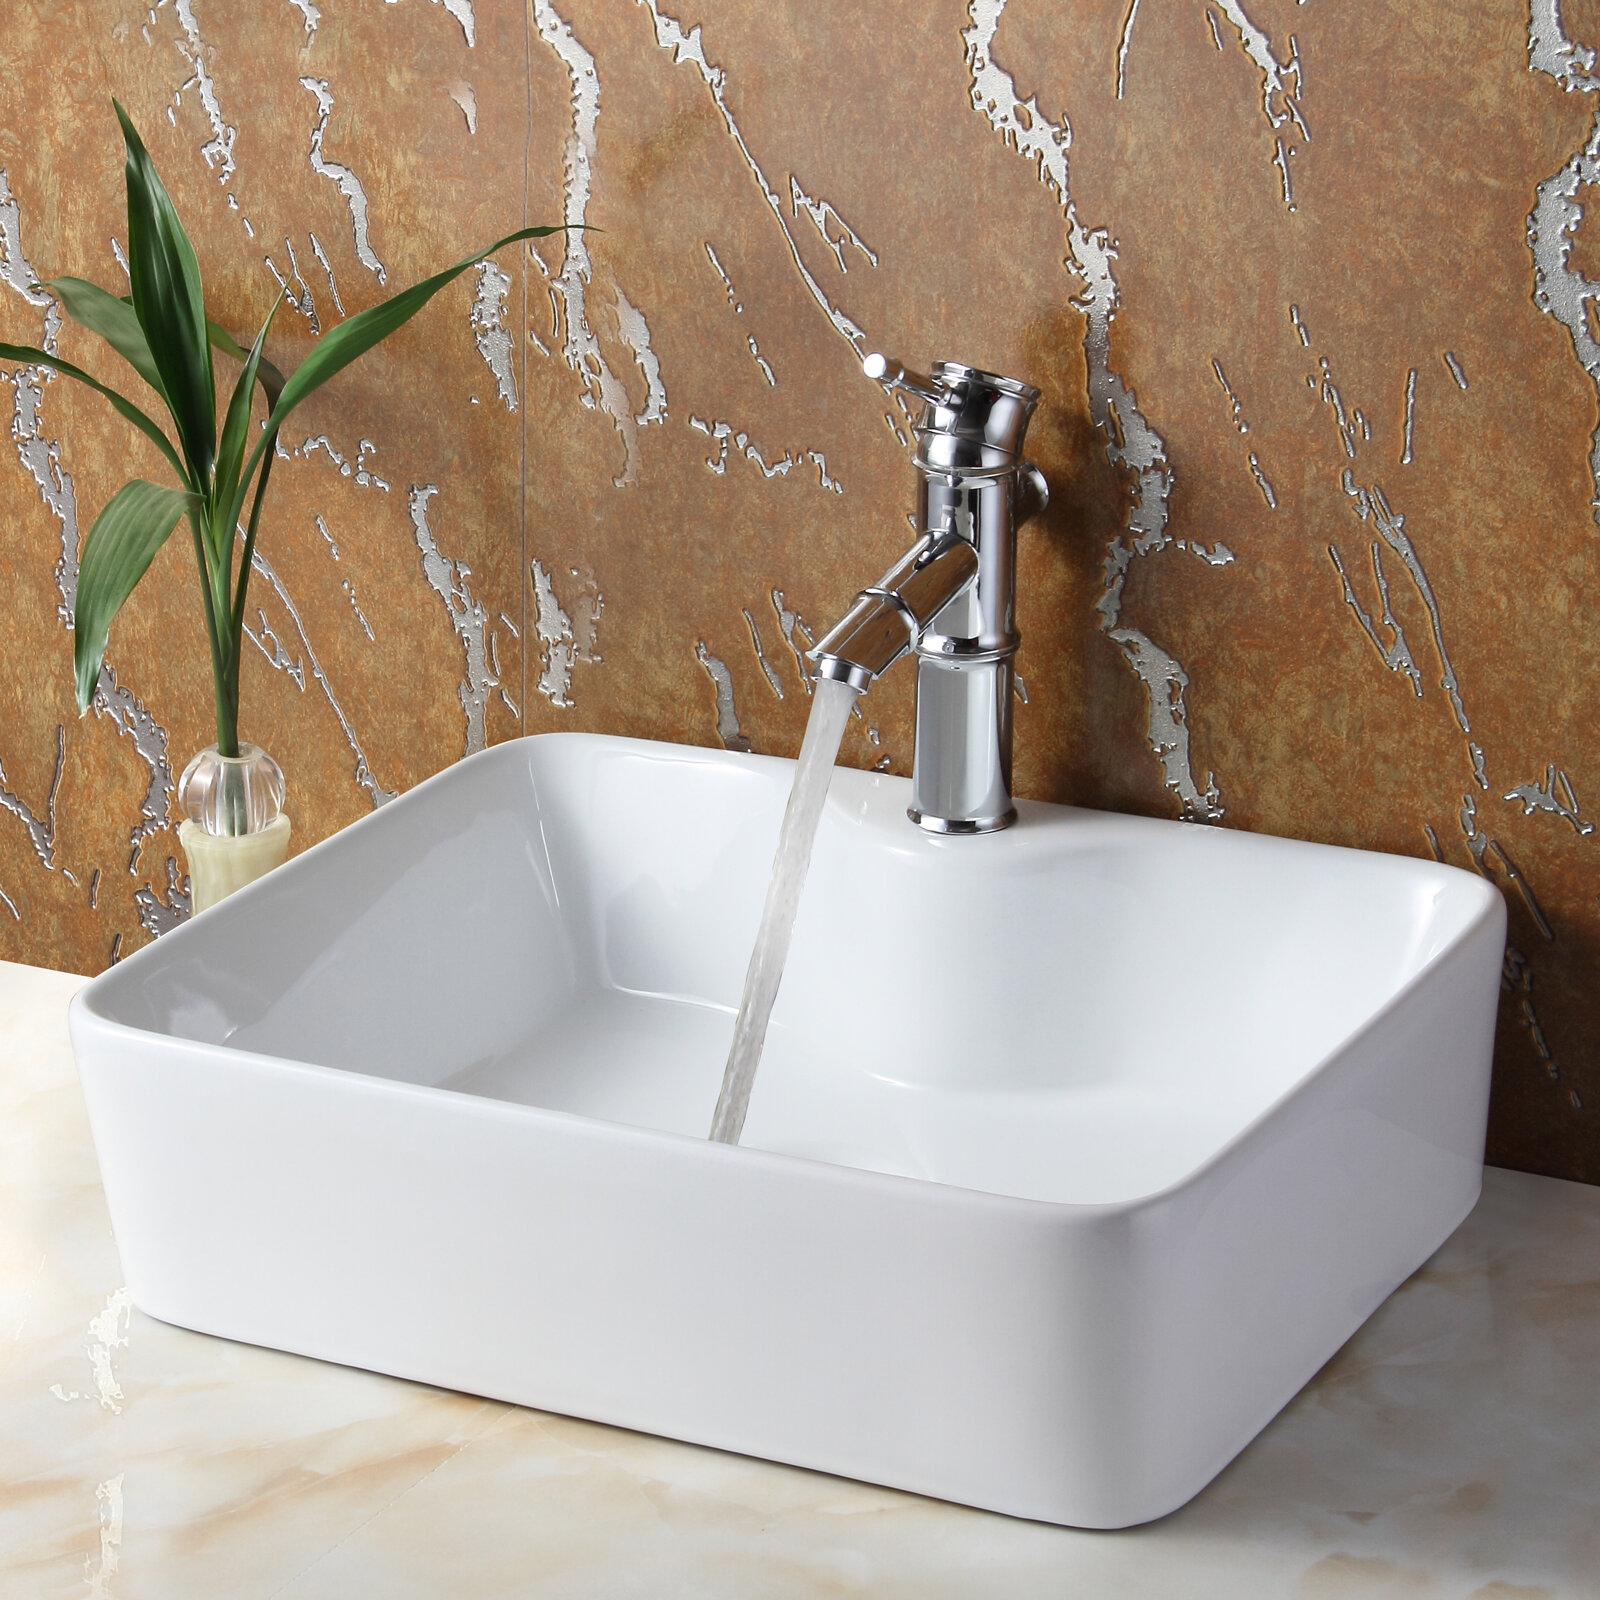 Bathroom Fixtures You\'ll Love | Wayfair